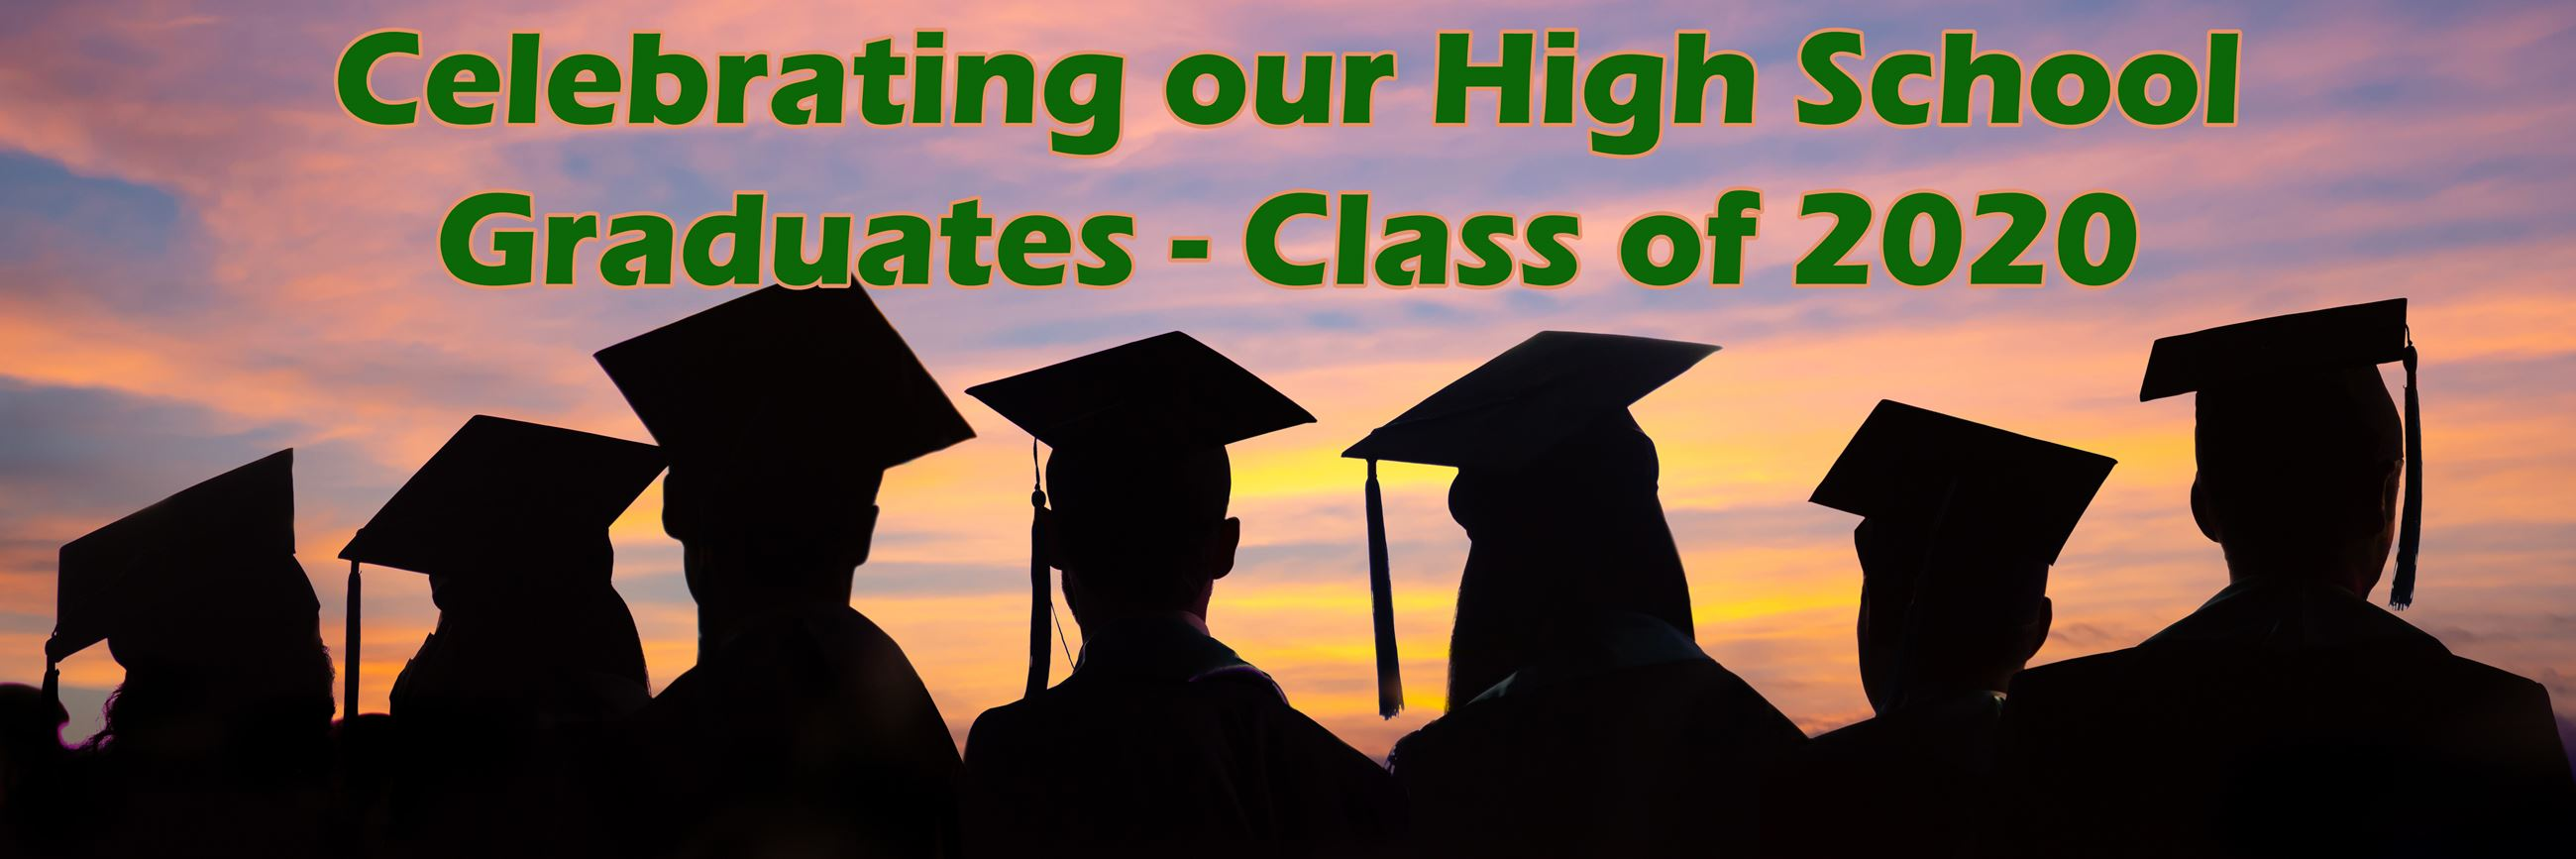 Celebrating our High School Graduates